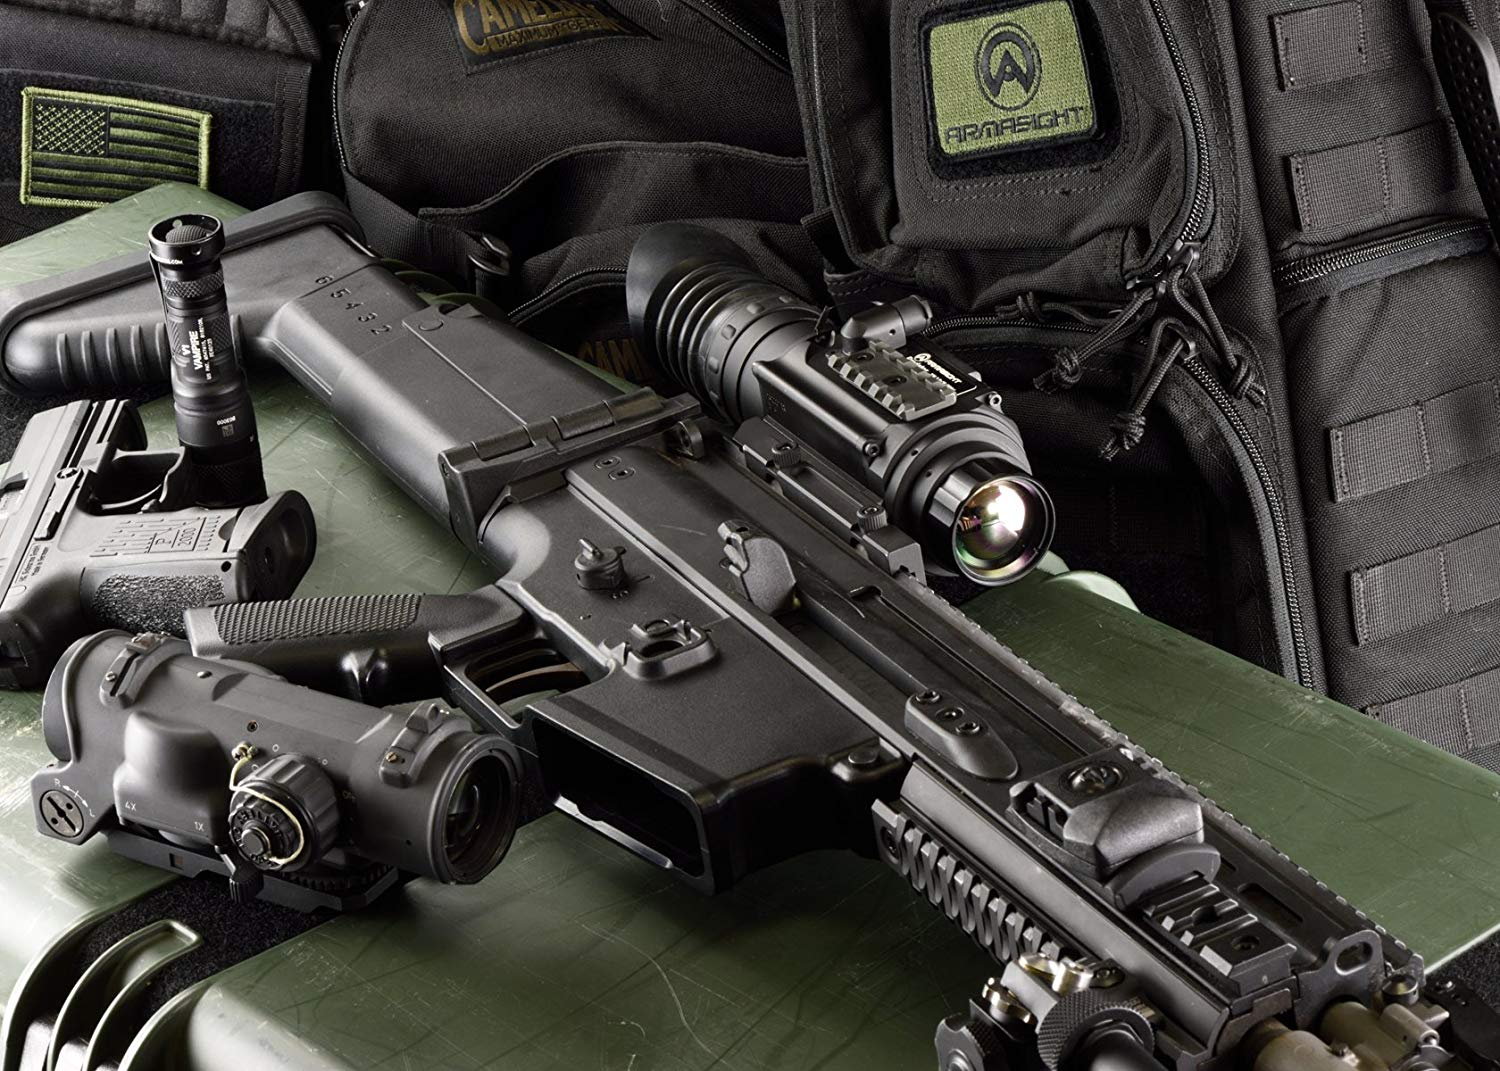 Best Thermal Scopes of 2021 – TOP 7 Picks to Make Your Hunt Flawless